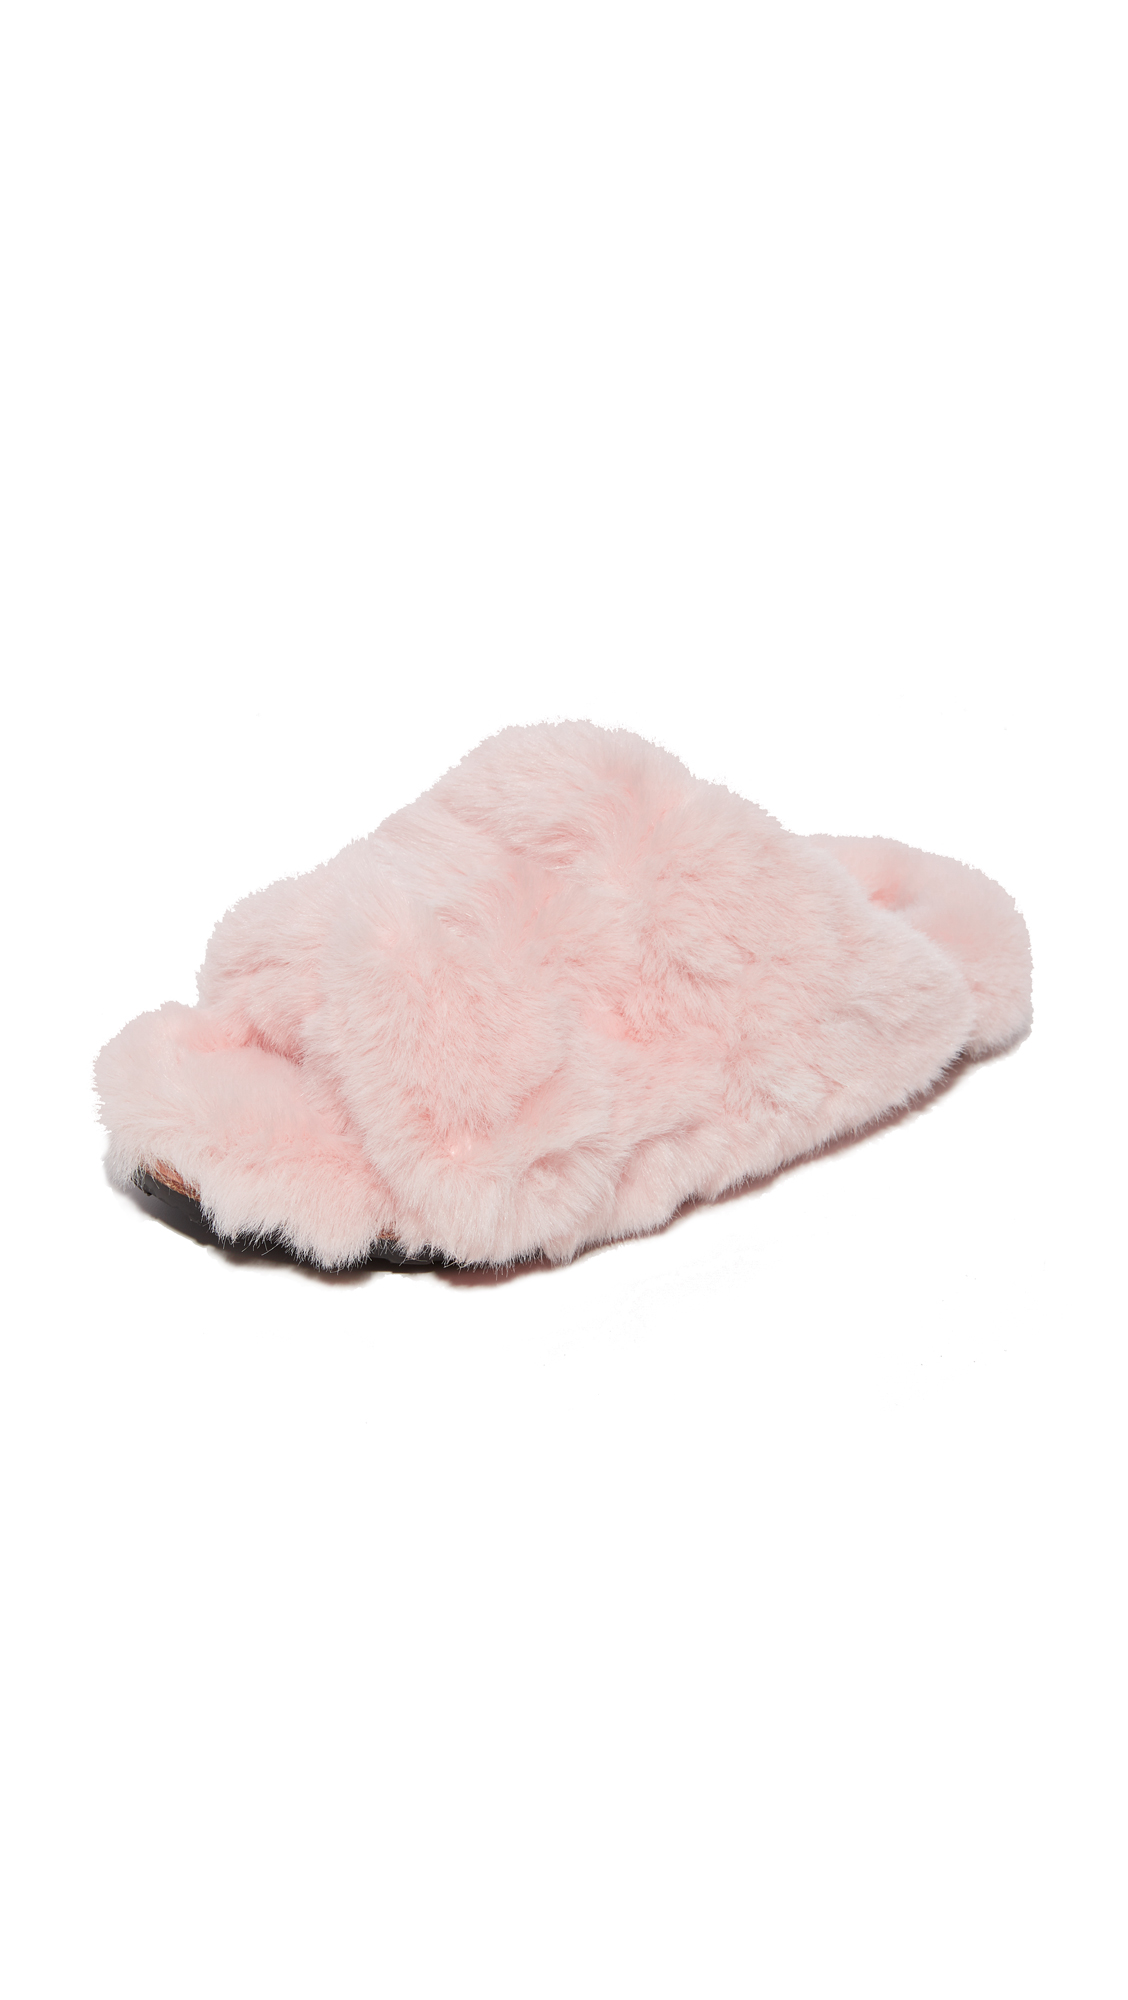 Suecomma Bonnie Faux Fur Detailed Flat Slides - Pink